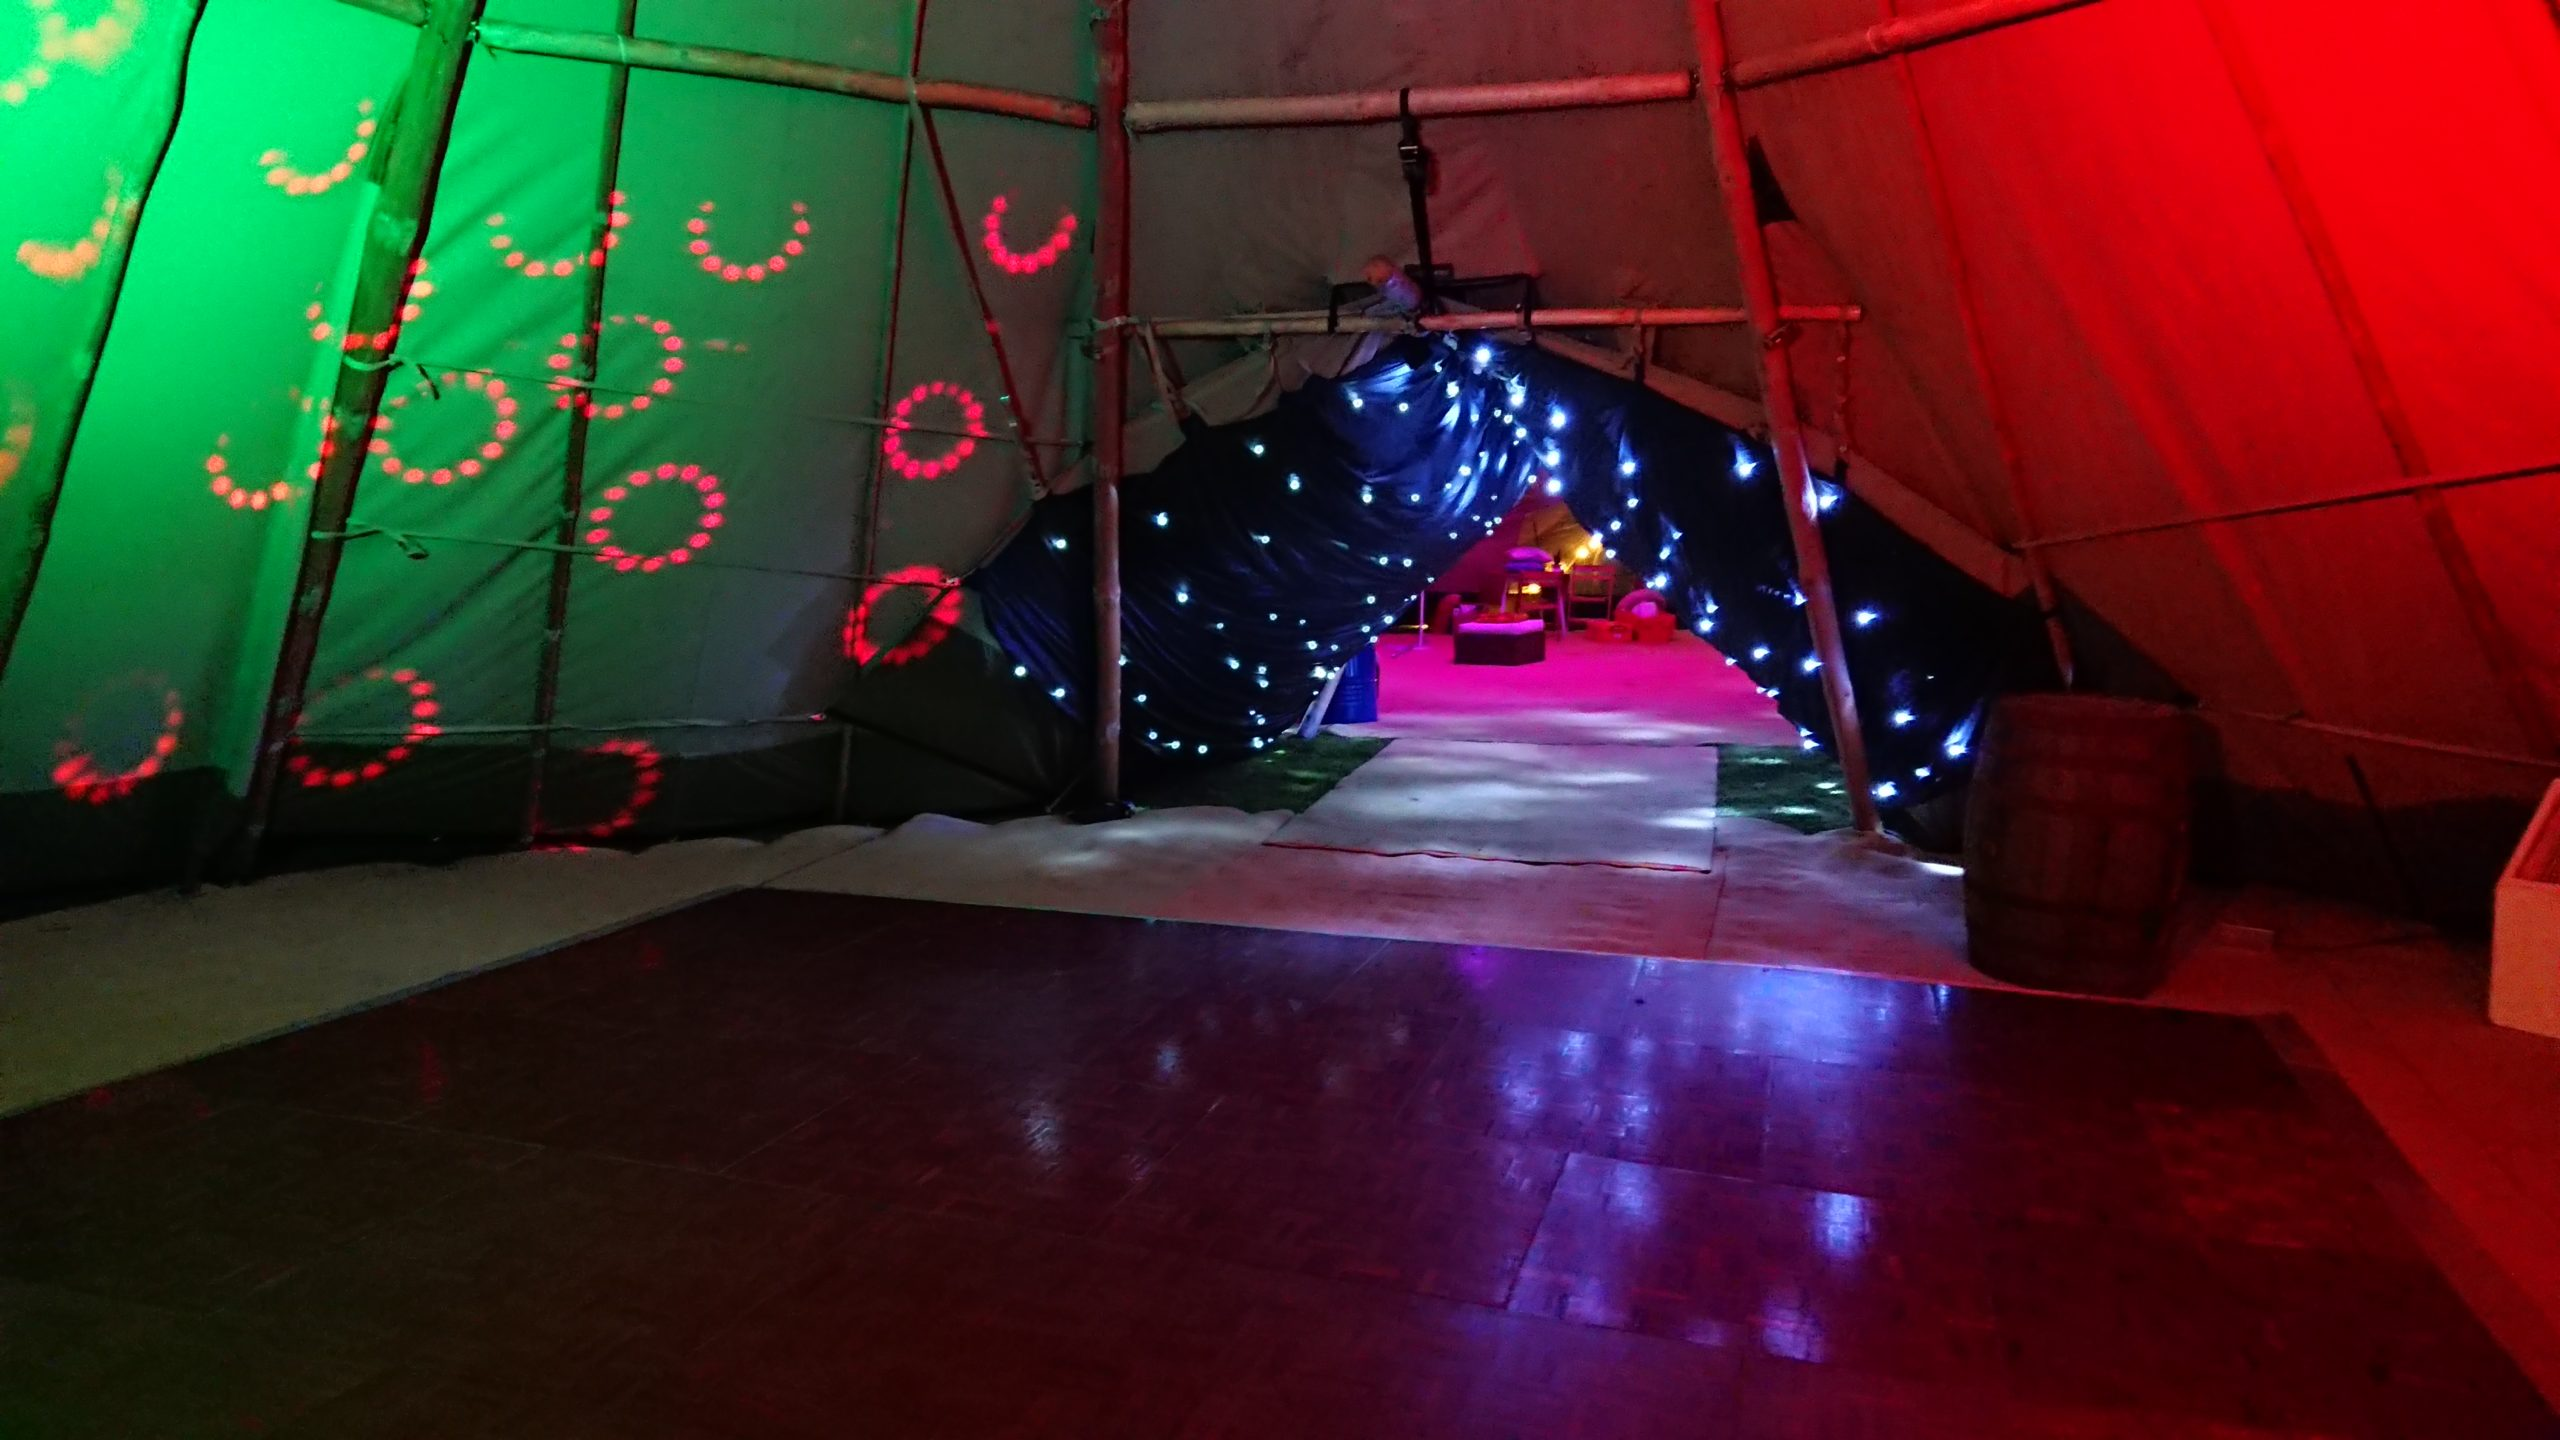 Unique tipi set up with dance floor area looking through starry tunnel to the bar and sofa area